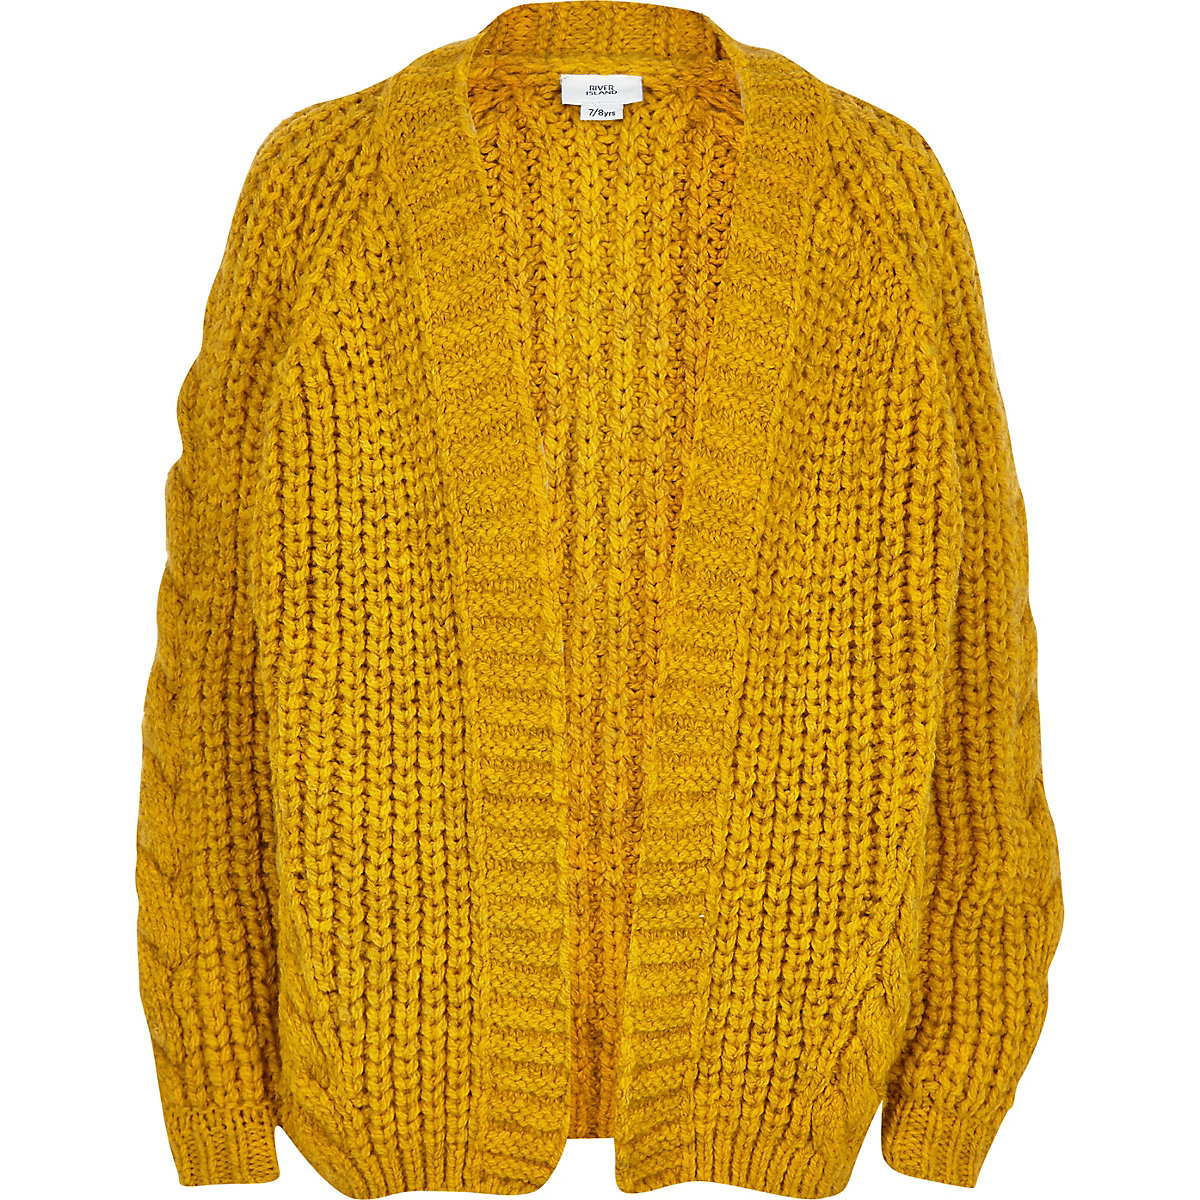 Yellow chunky cable knit cardigan